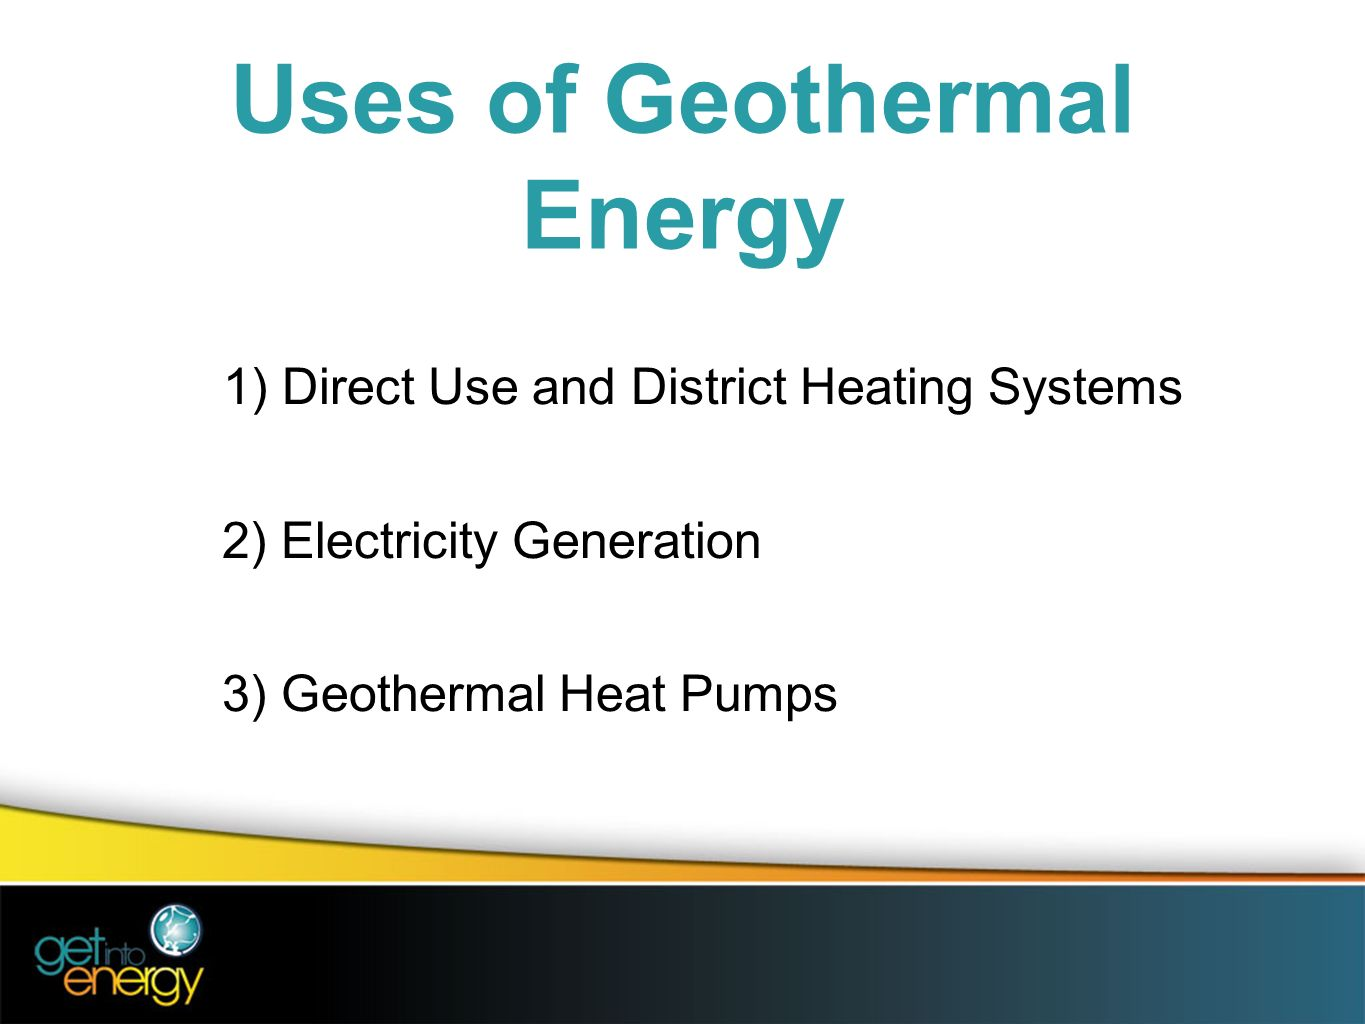 what are the three main uses of geothermal energy